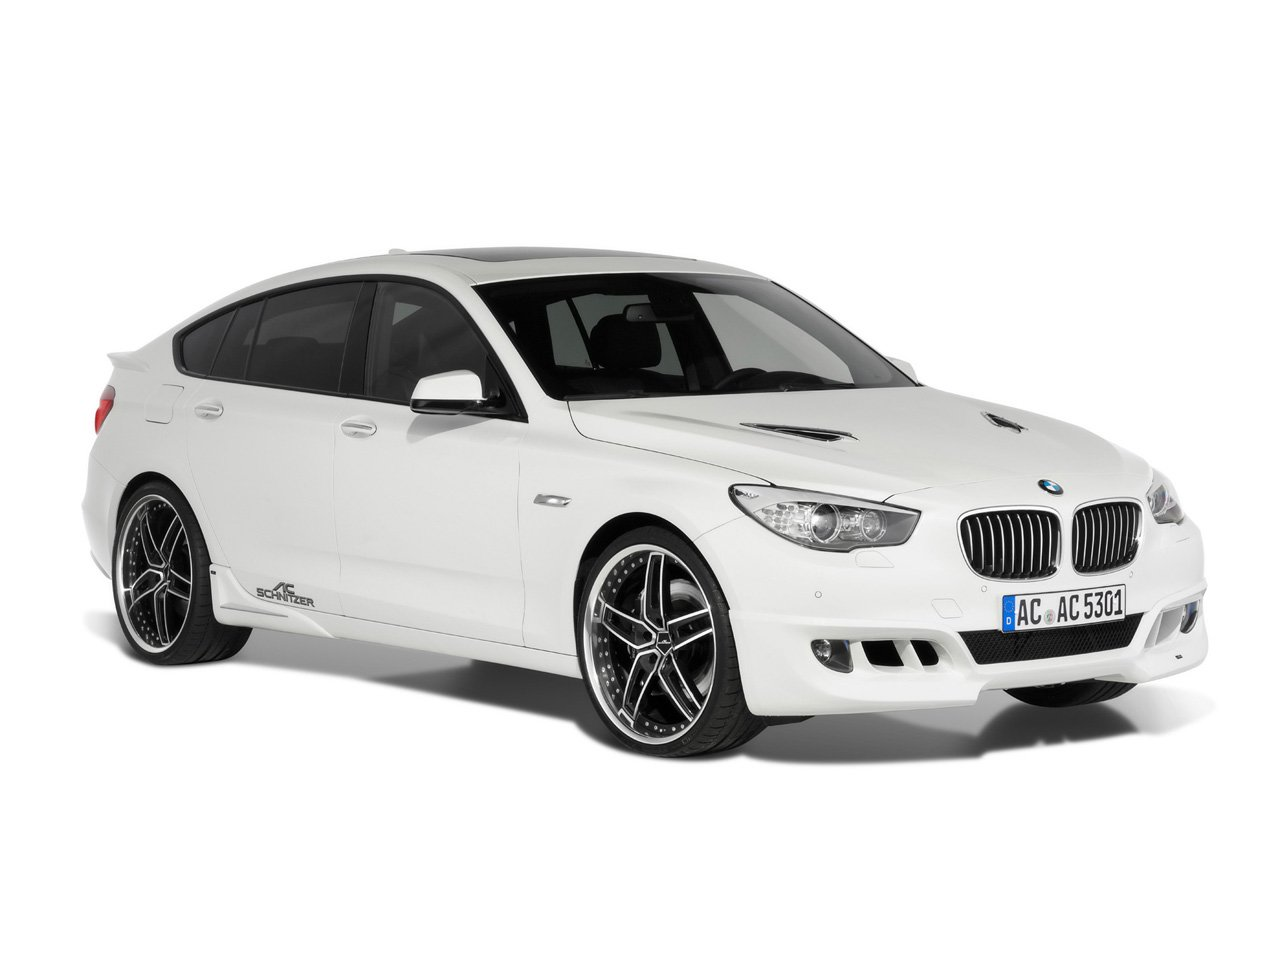 Latest 2010 Ac Schnitzer 5 Series Gt Bmw F07 Wallpapers Auto Free Download